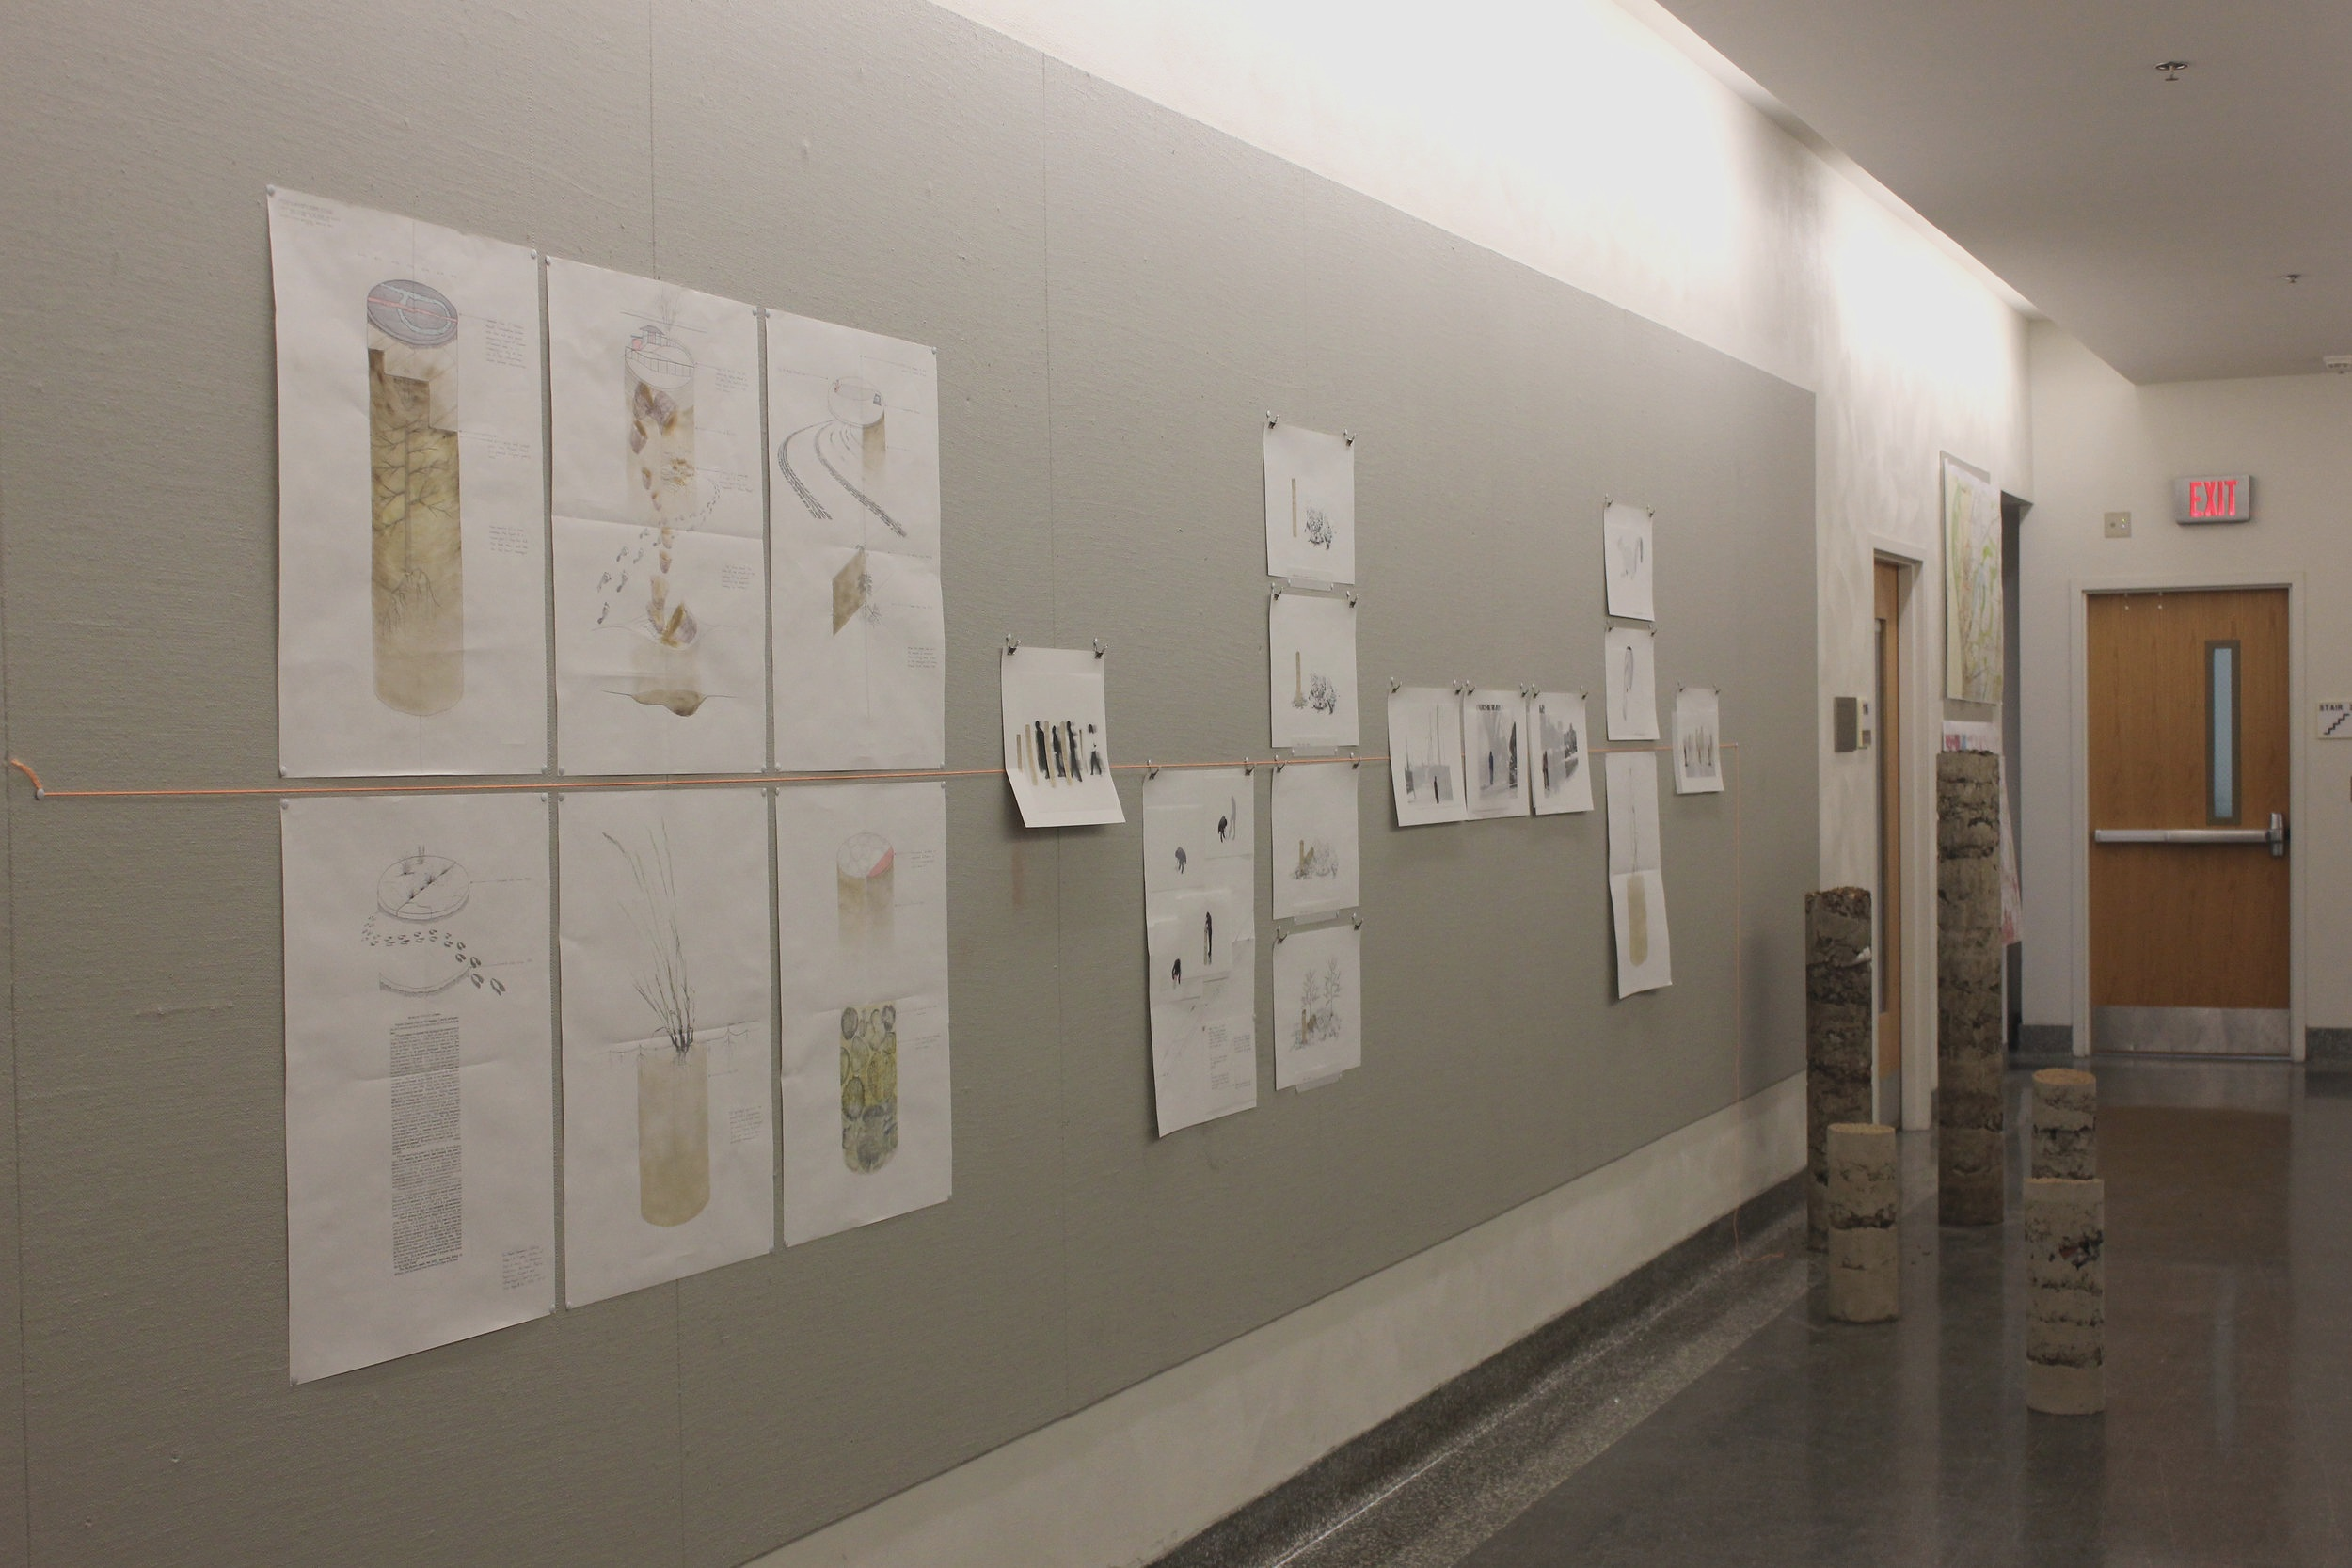 Exhibition of work at the Sam Fox School of Design and Visual Arts.  * Bromegrass Core  drawing collected by Jesse Vogler. * Approximate Core  sculptures collected by Amanda Bowles, Rod Barnett, and Jacqueline Margetts.